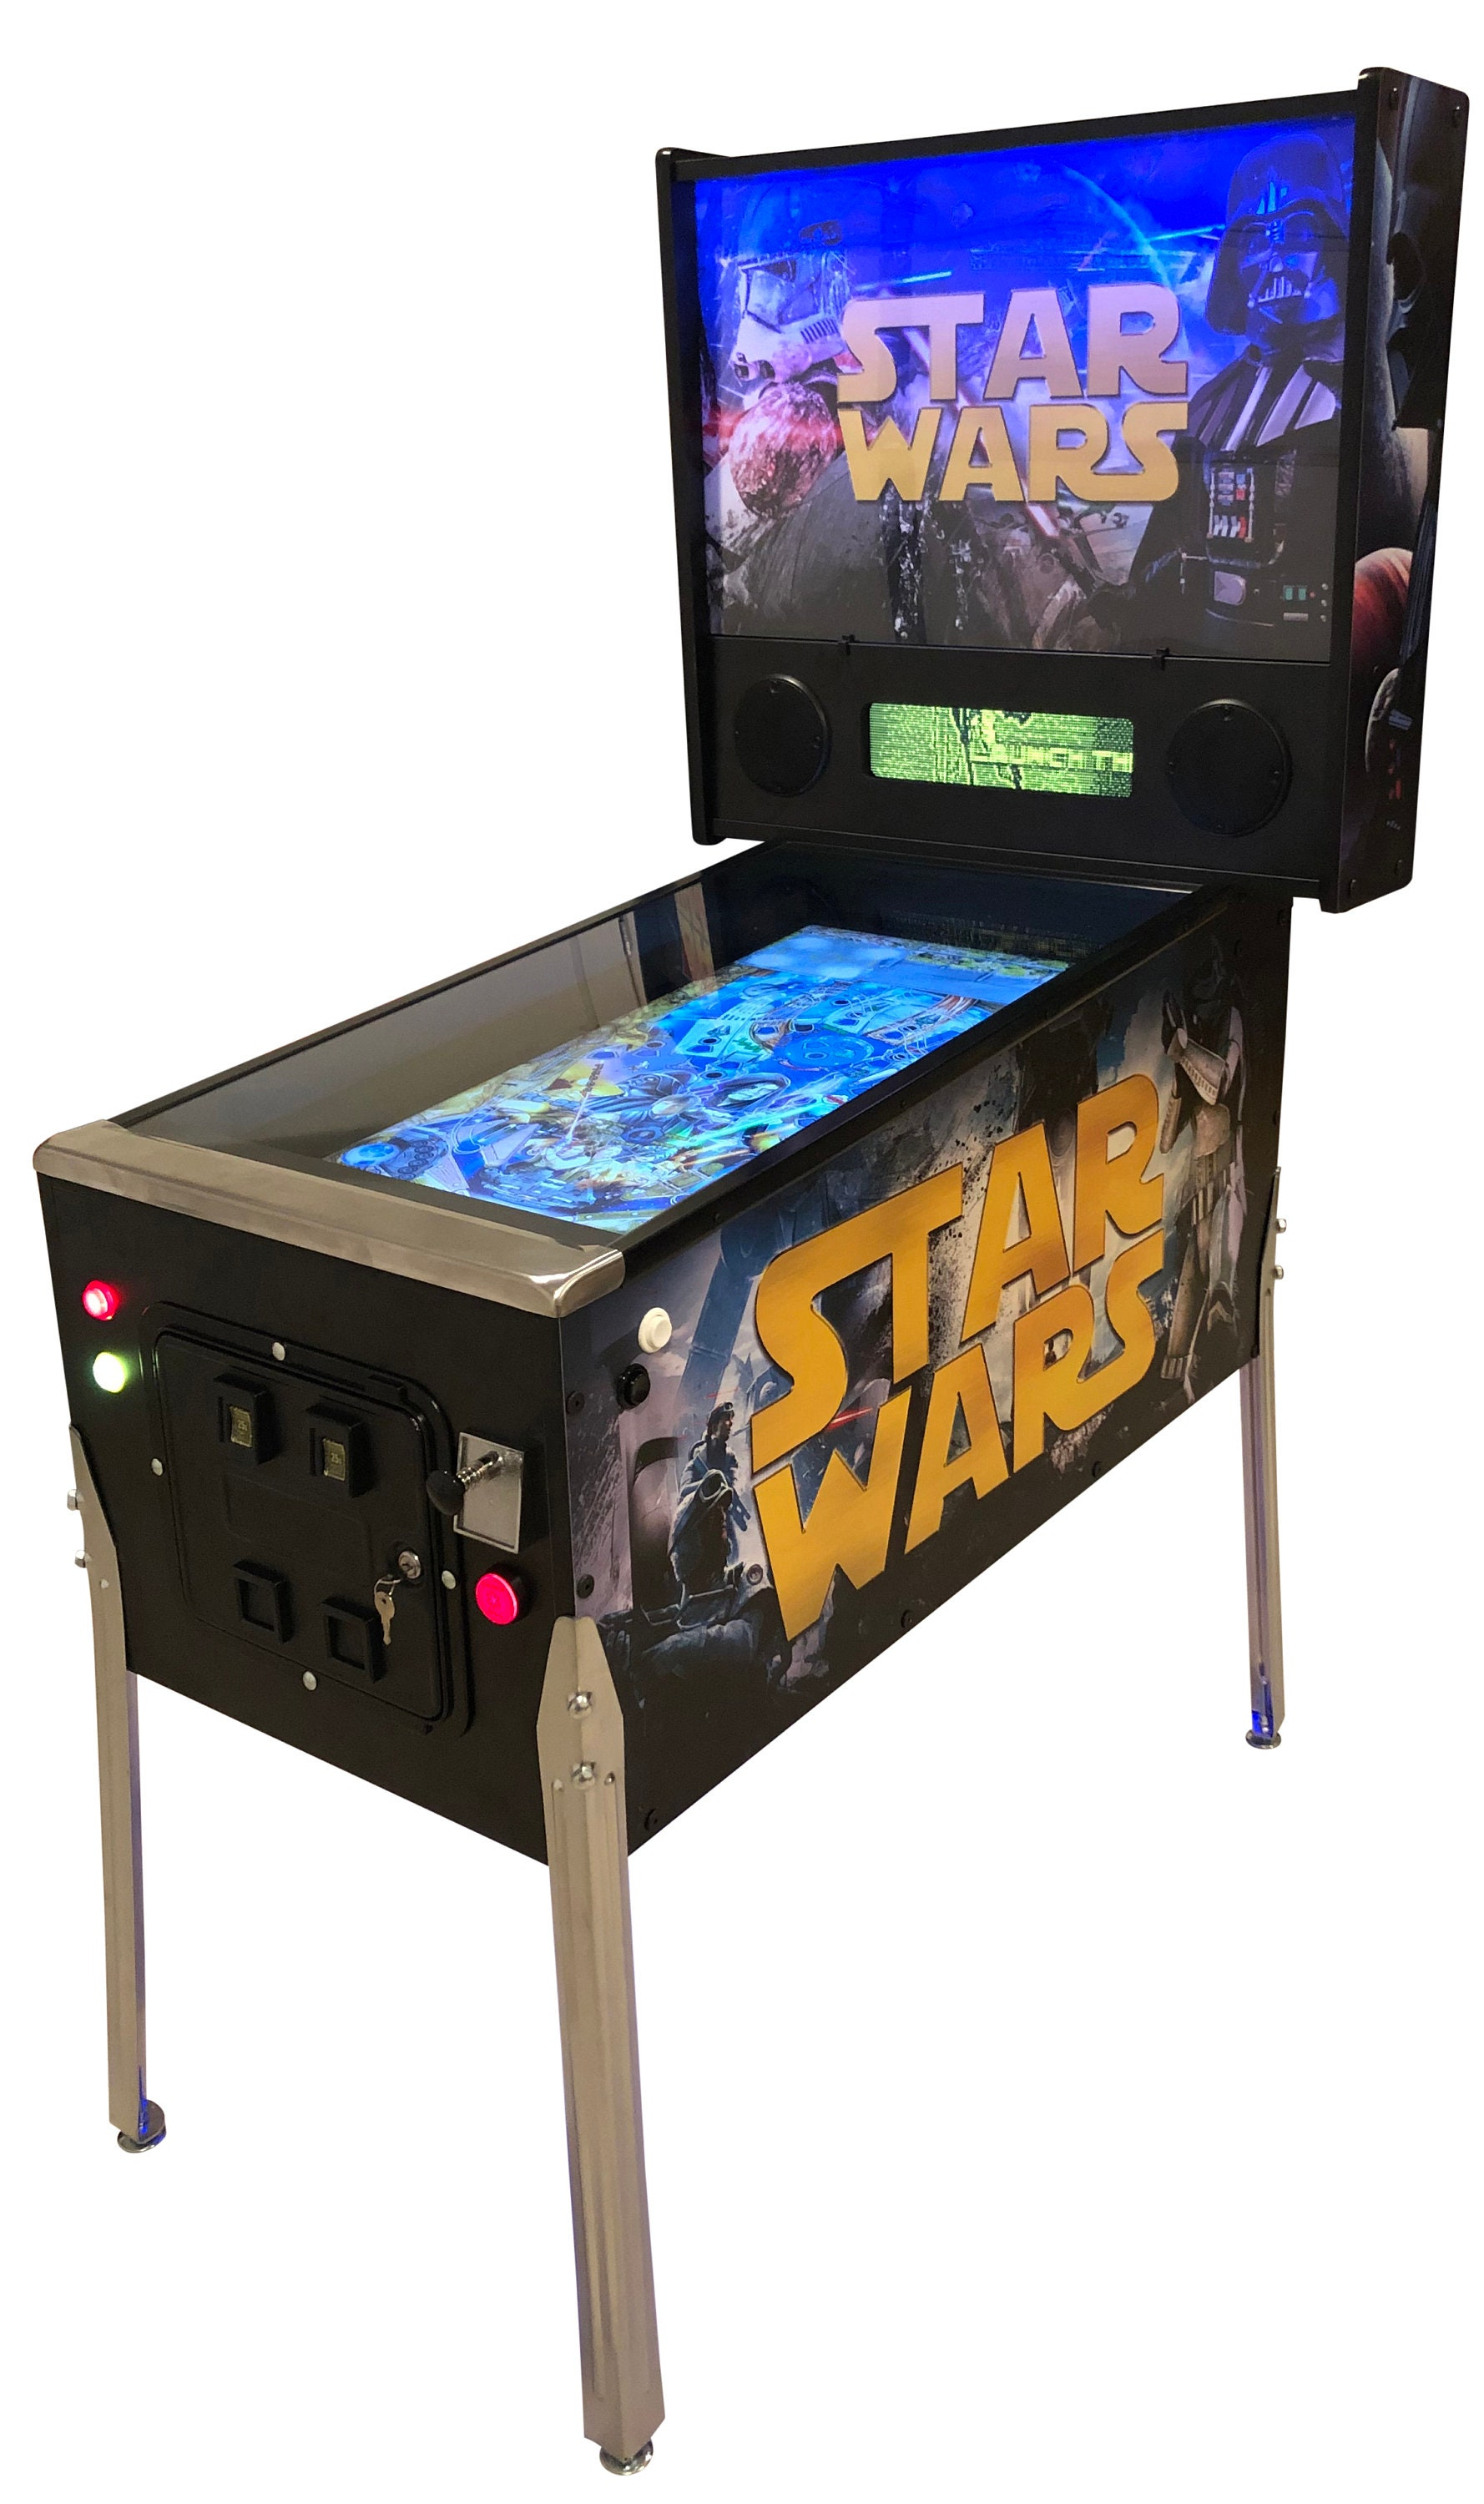 Star Wars Pinball Machine >> Star Wars Pro Mode Full Size Virtual Pinball Machine W Online Etsy